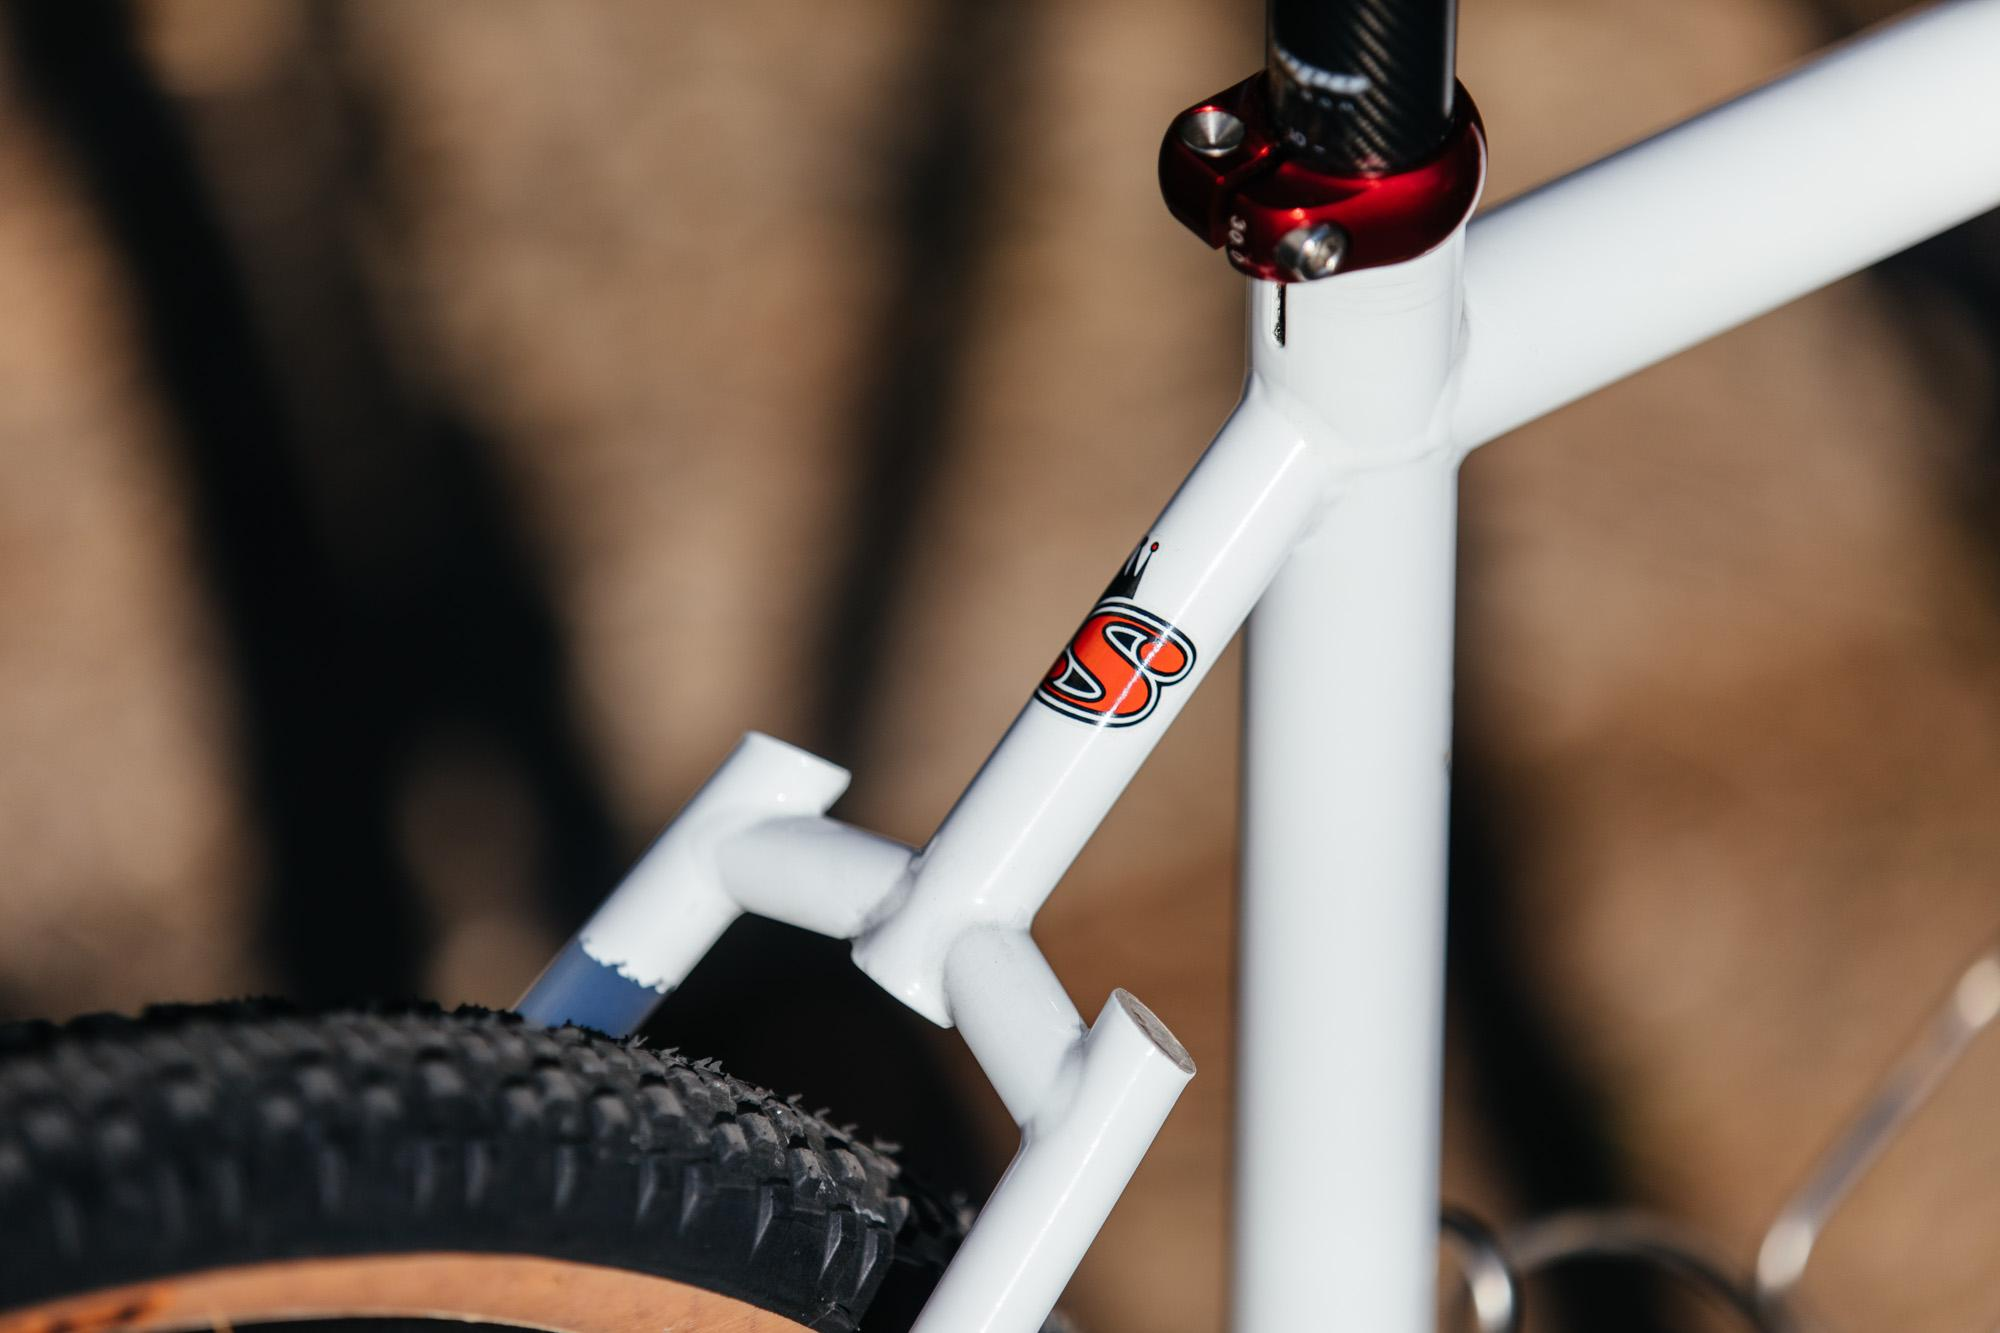 2019 Grinduro Sycip Gravel Bike